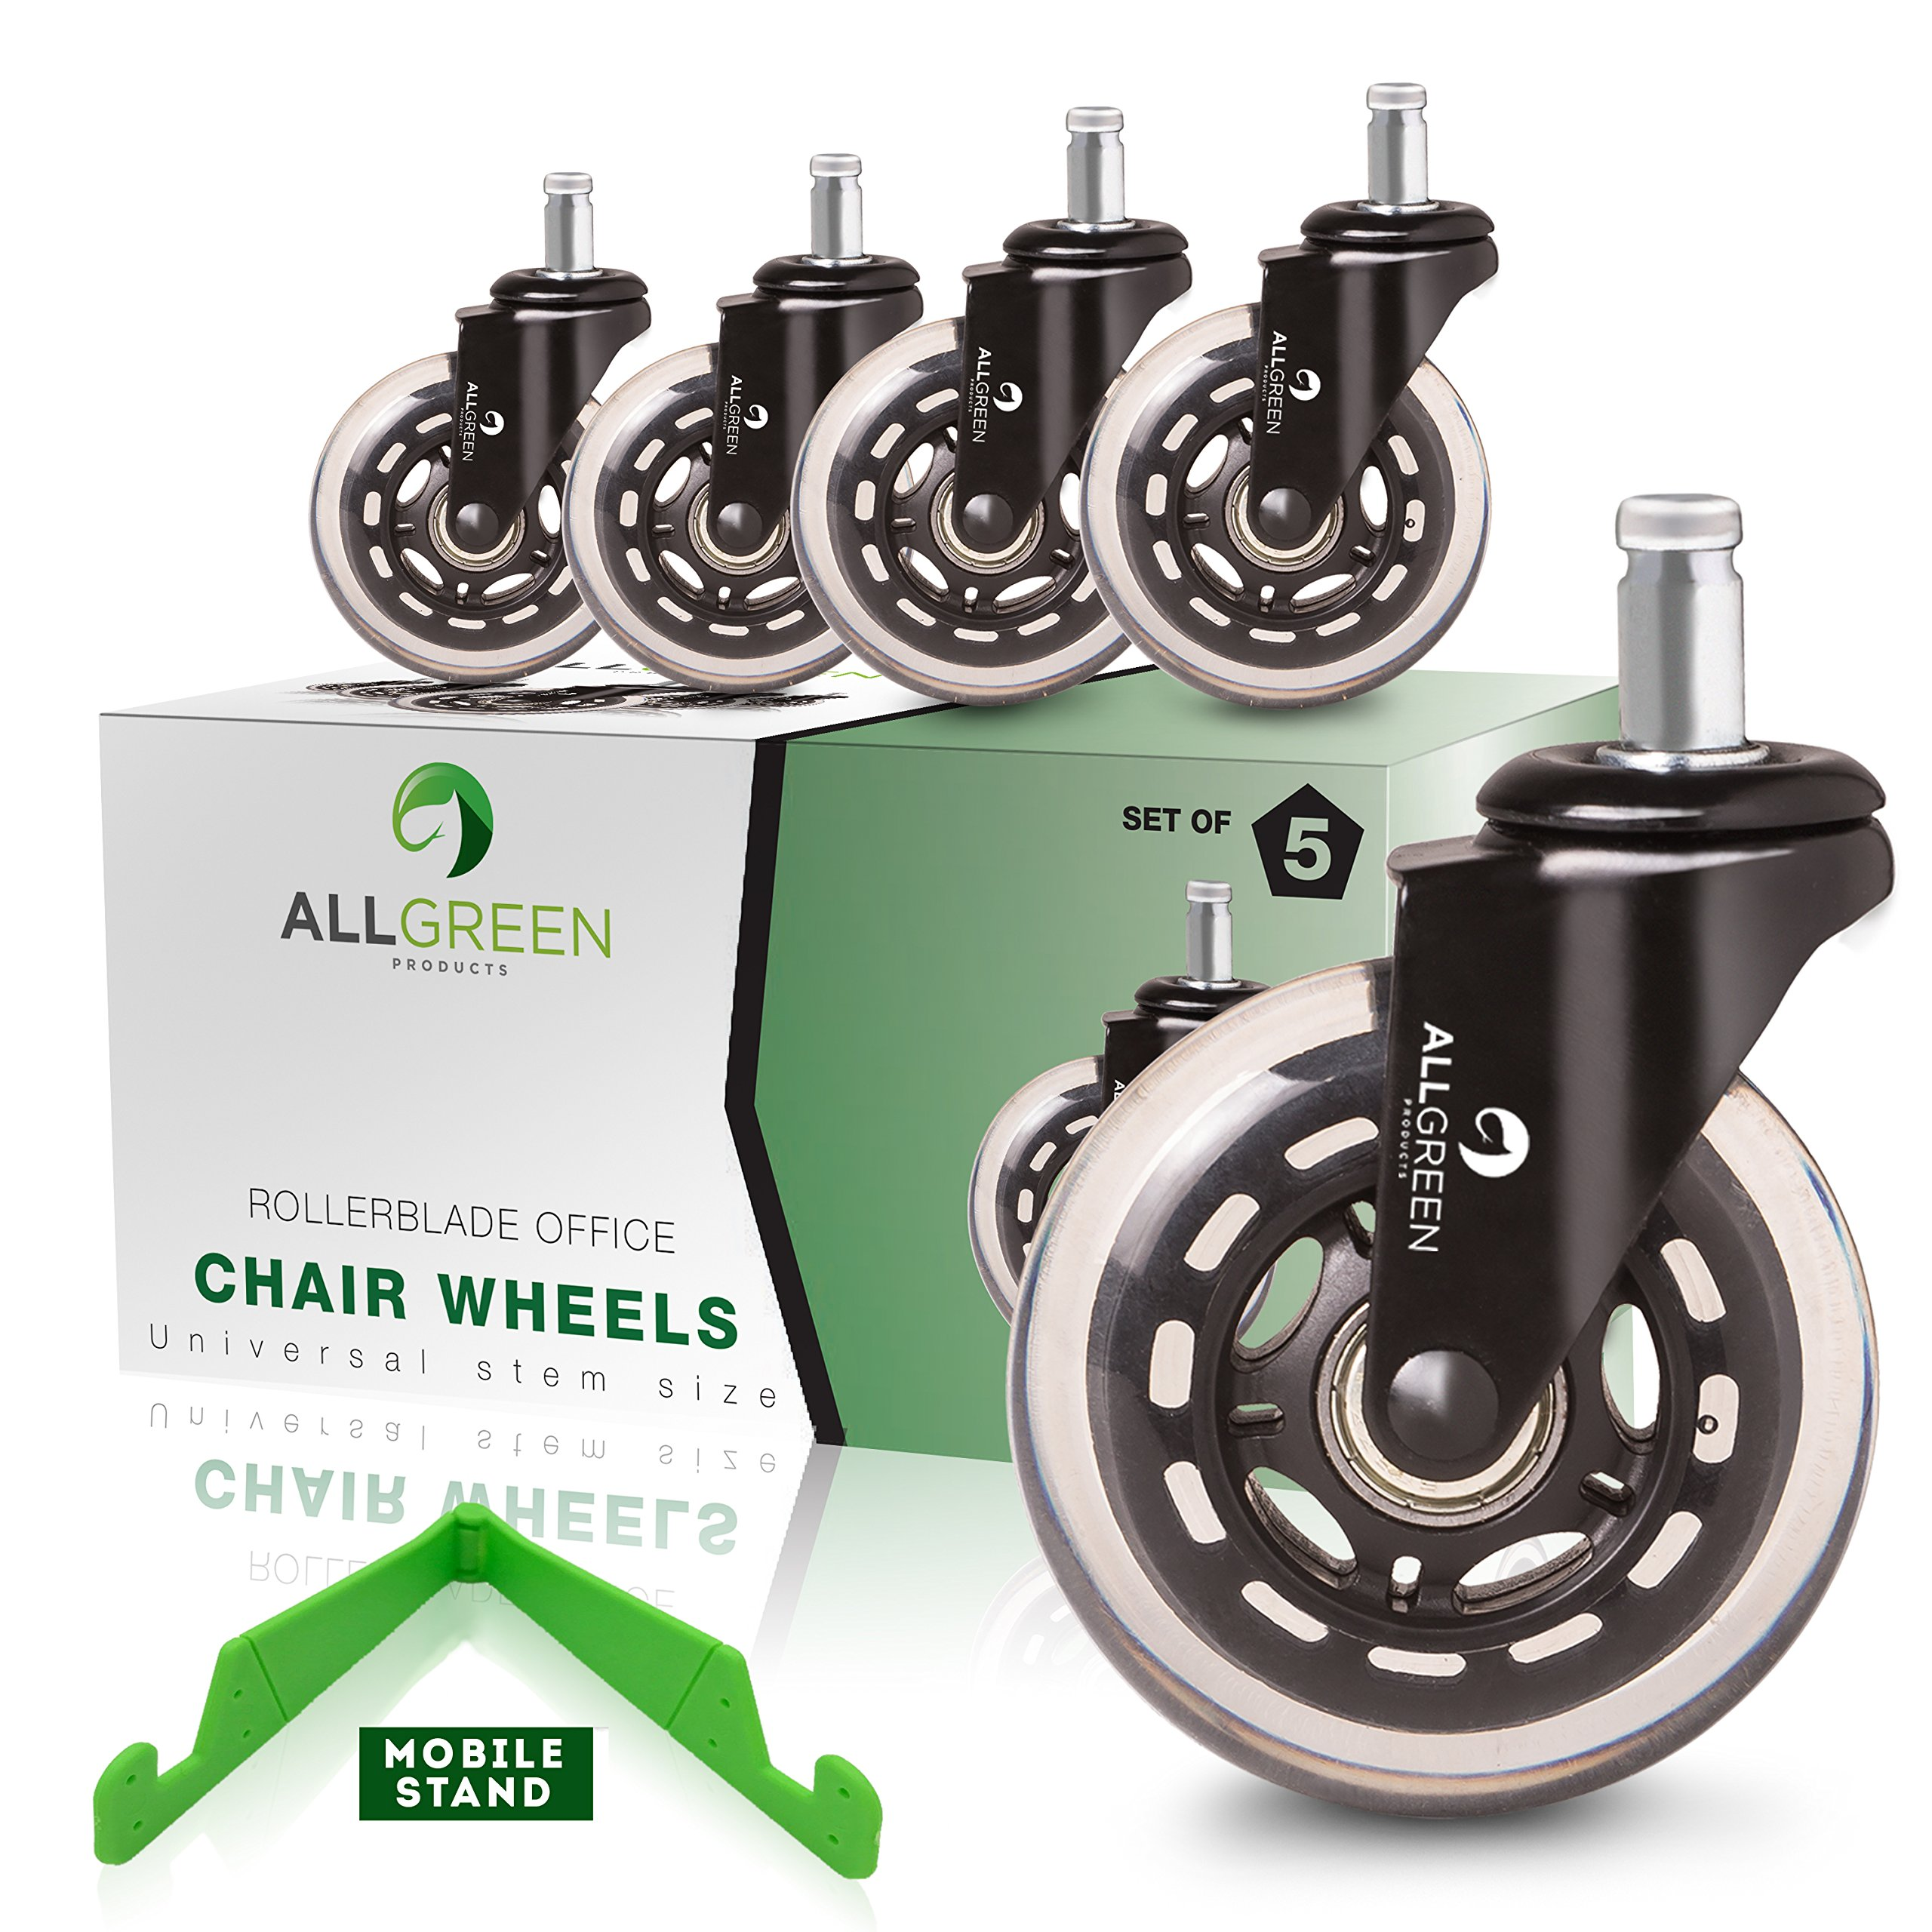 Rollerblade Office Chair Caster Wheels Replacement Set of 5 New Model 2018 Heavy Duty Easy installation and Universal Fit + FREE Mobile Stand and eBook - Silky Smooth Rolling Style Swivel by All-Green